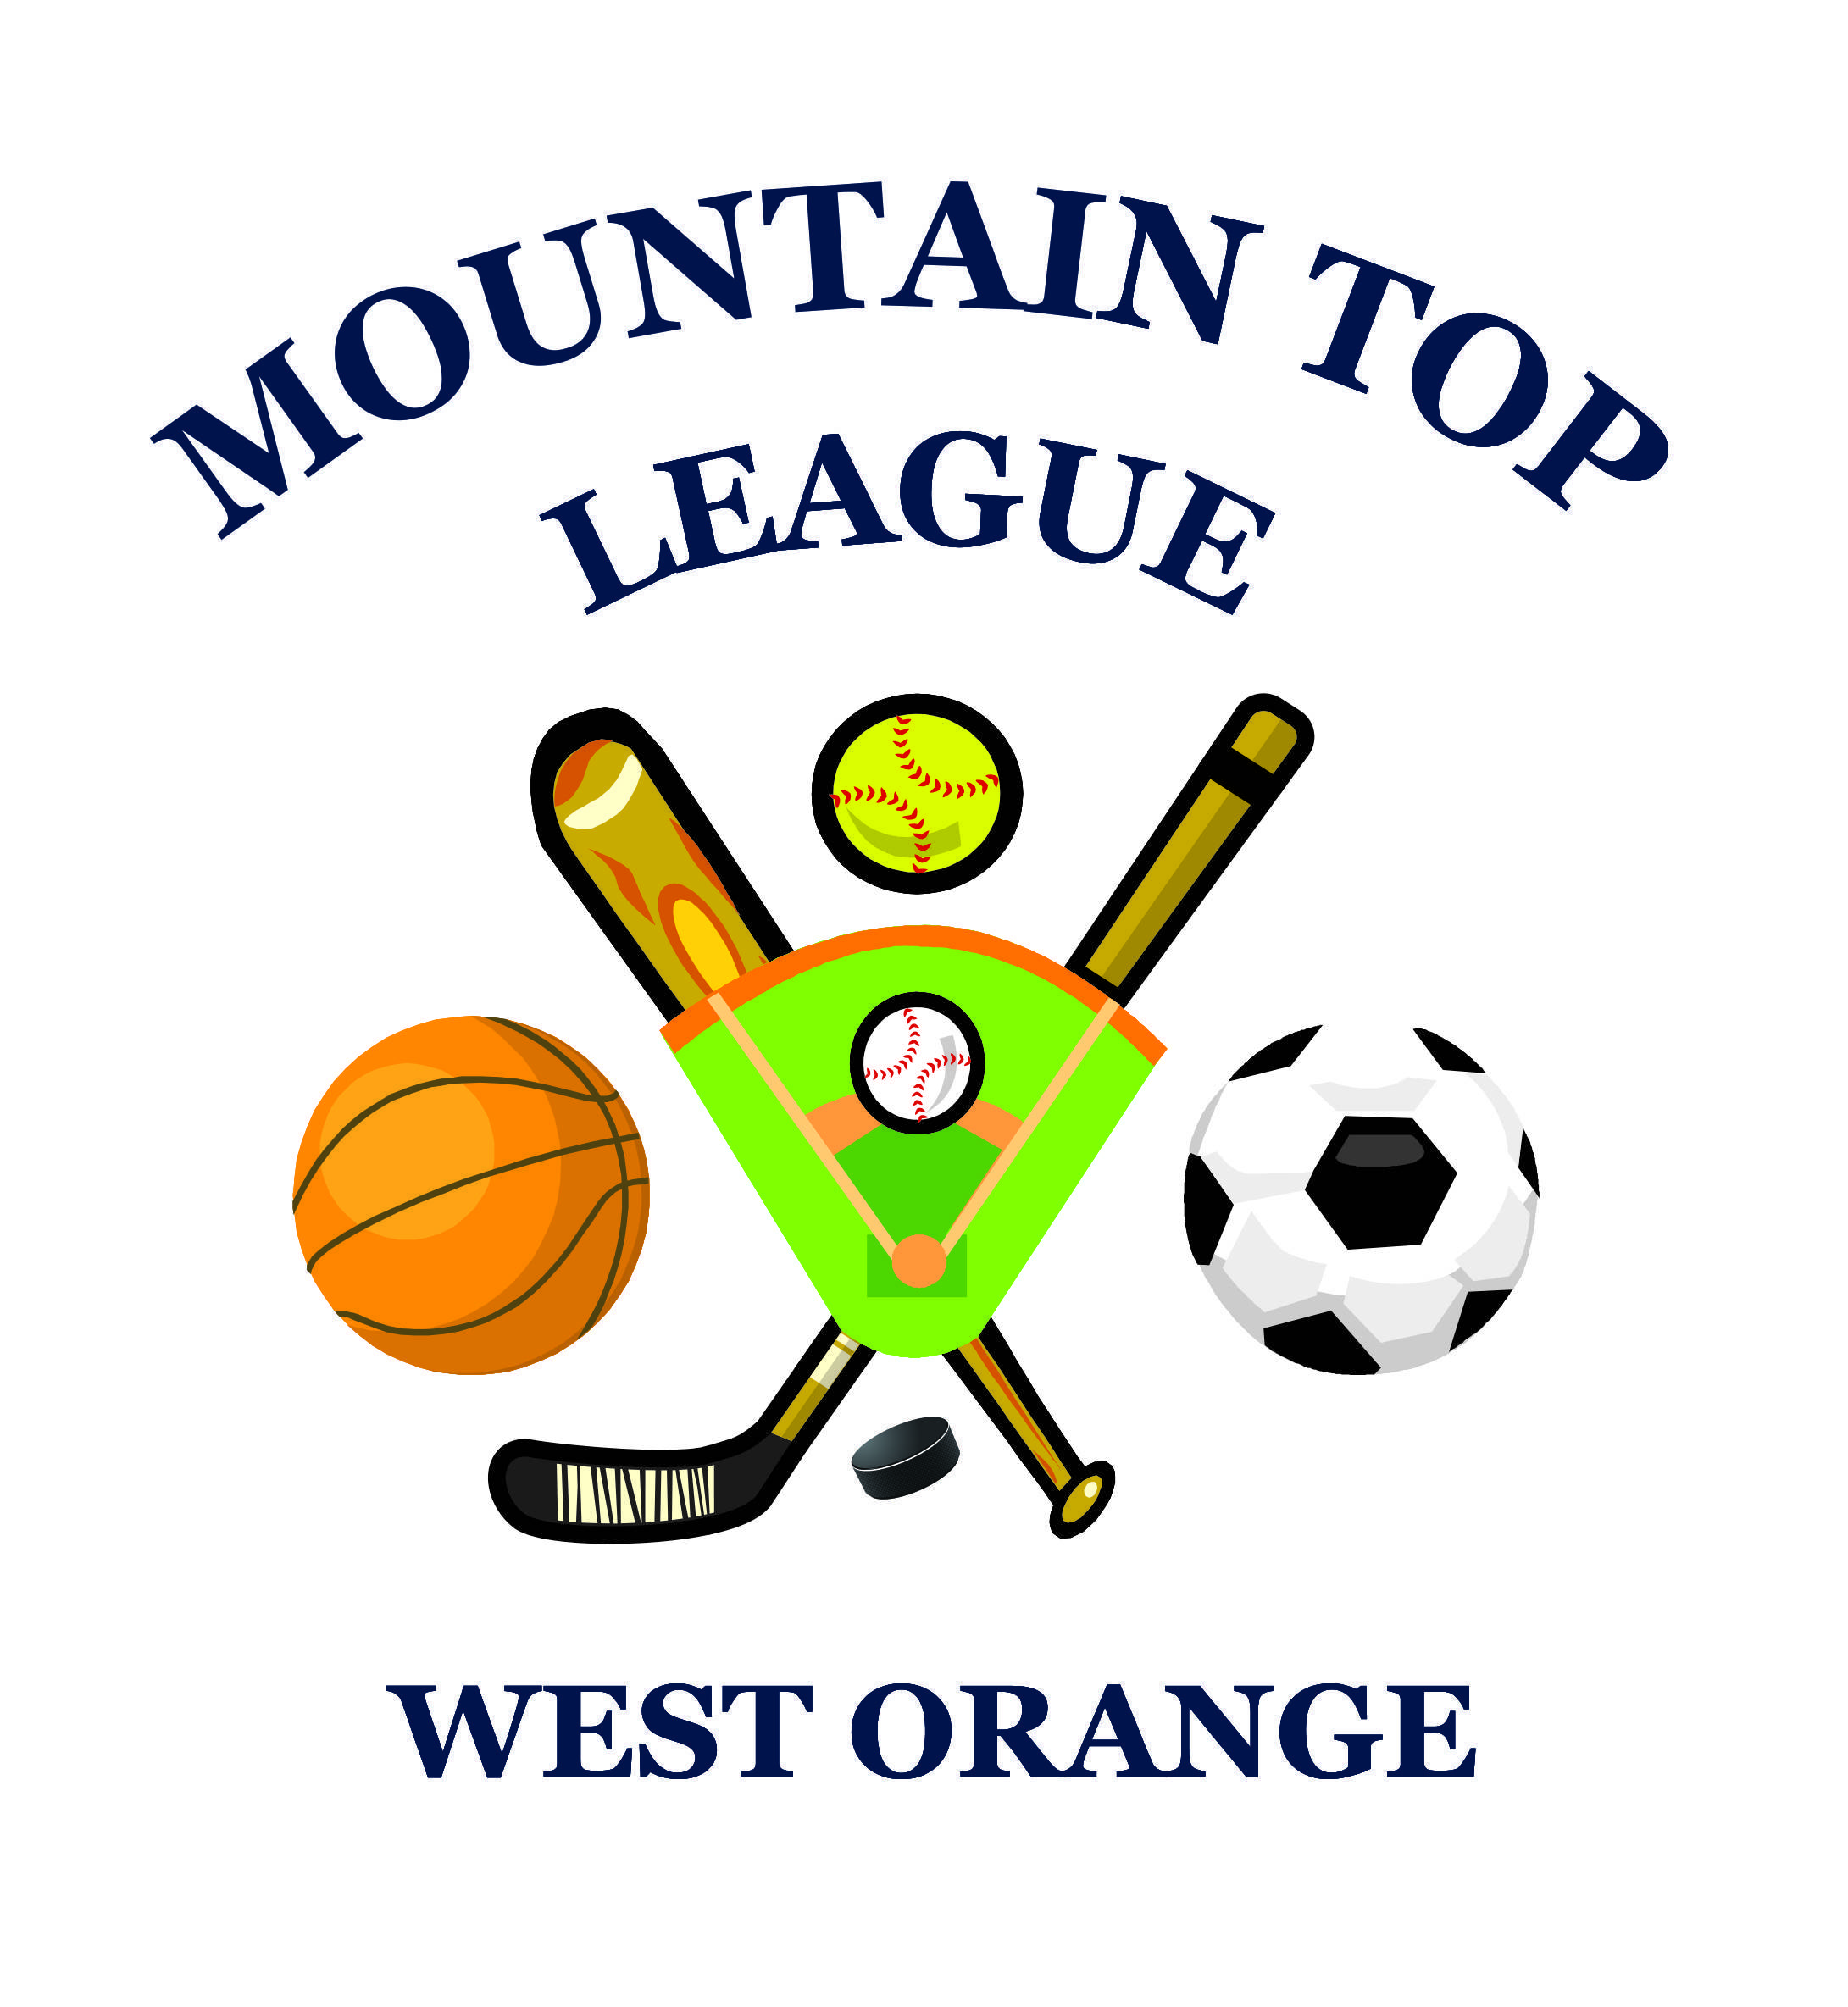 282f8d2669c06c0d328a_WO_Mountain_Top_League_Logo.jpg